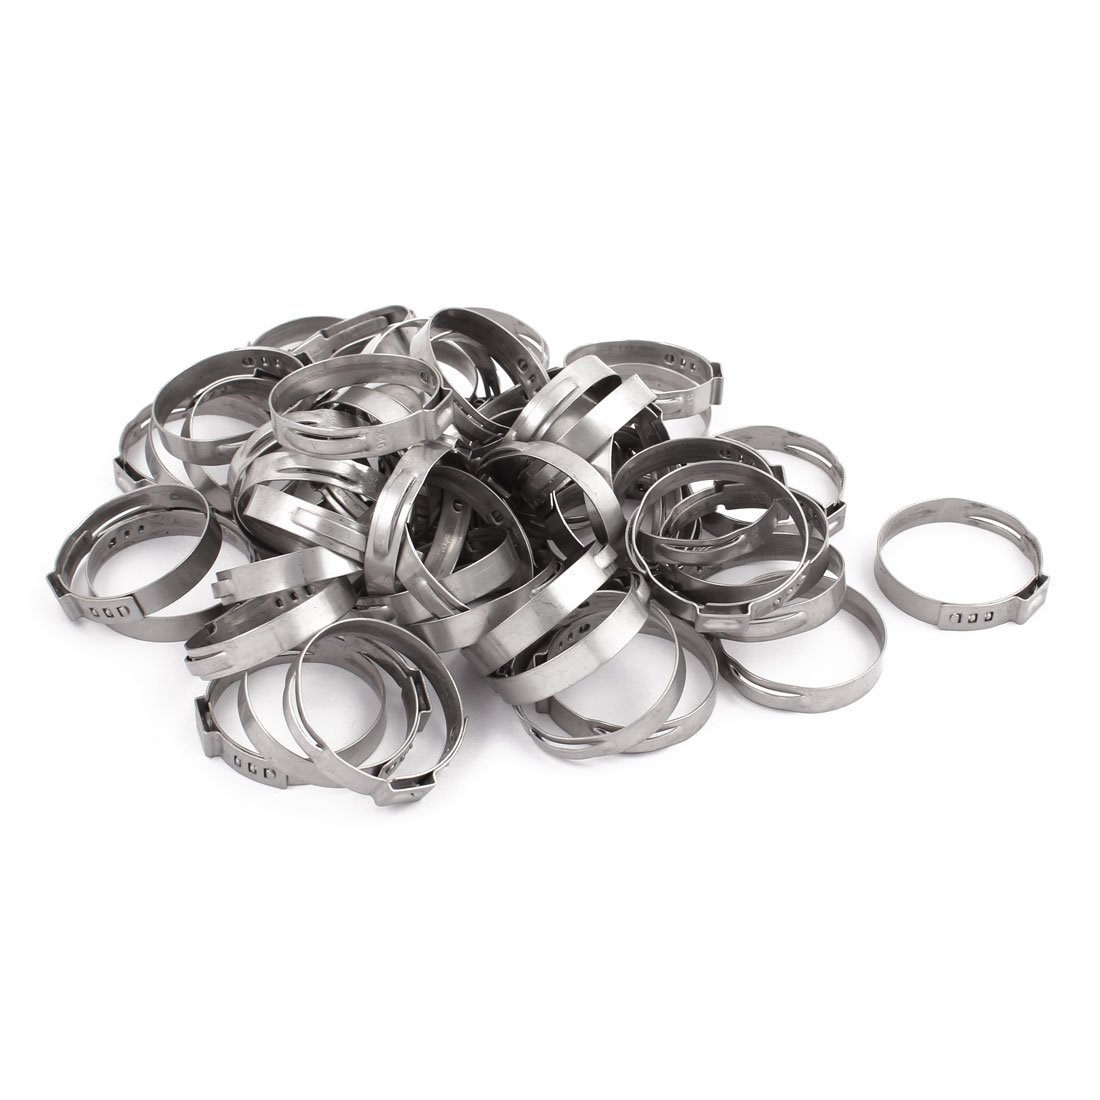 uxcell 31.4mm-34.6mm 304 Stainless Steel Adjustable Tube Hose Clamps Silver Tone 50pcs